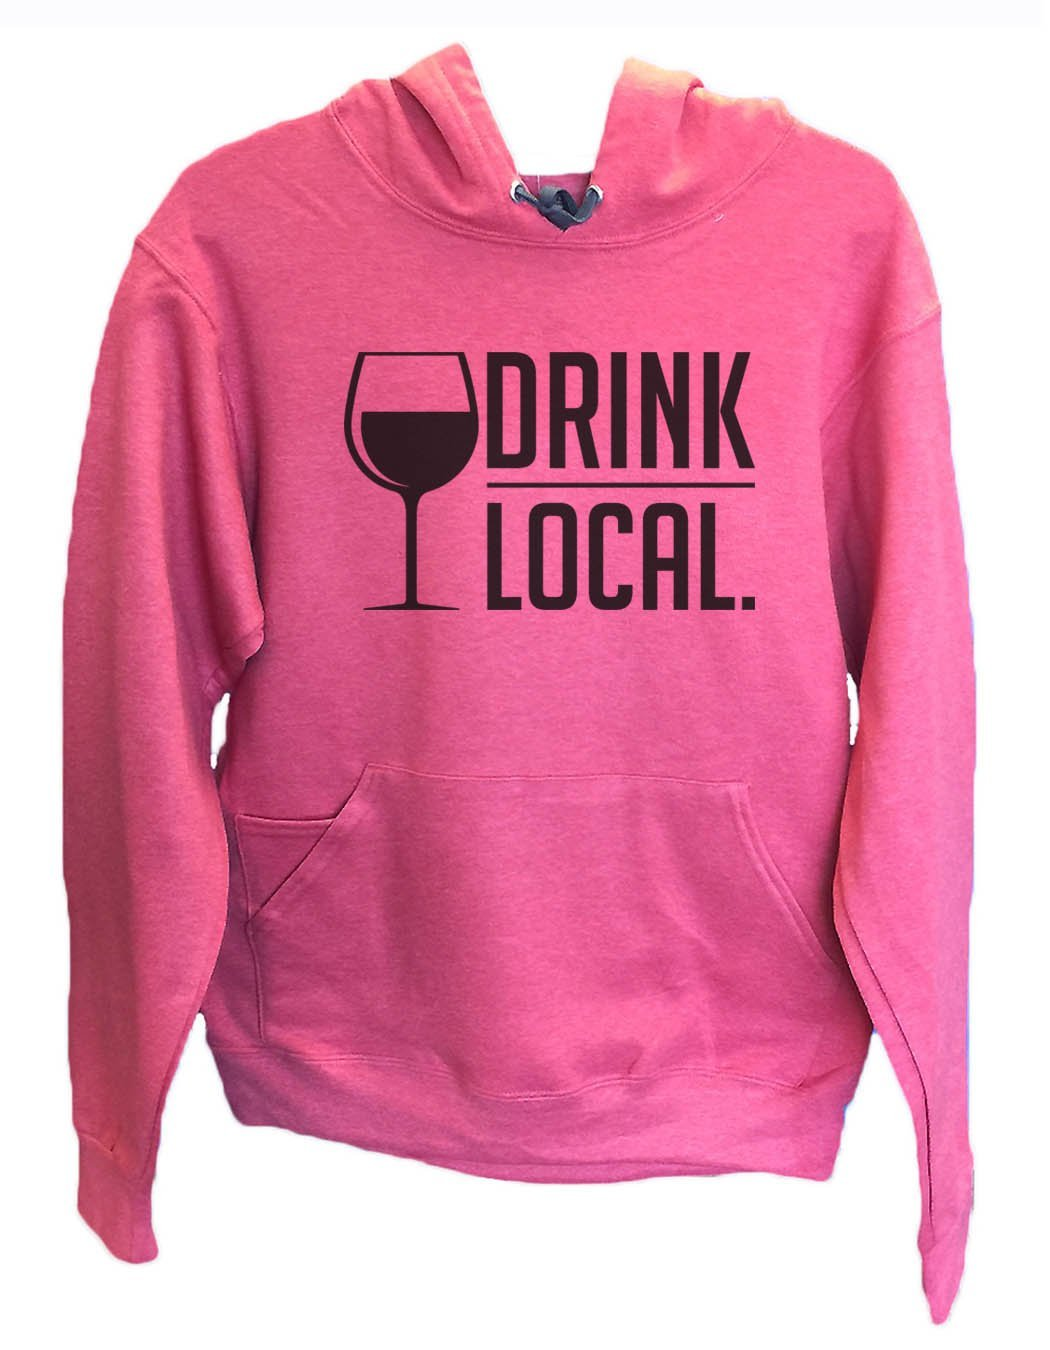 UNISEX HOODIE - Drink Local. - FUNNY MENS AND WOMENS HOODED SWEATSHIRTS - 2157 Funny Shirt Small / Cranberry Red